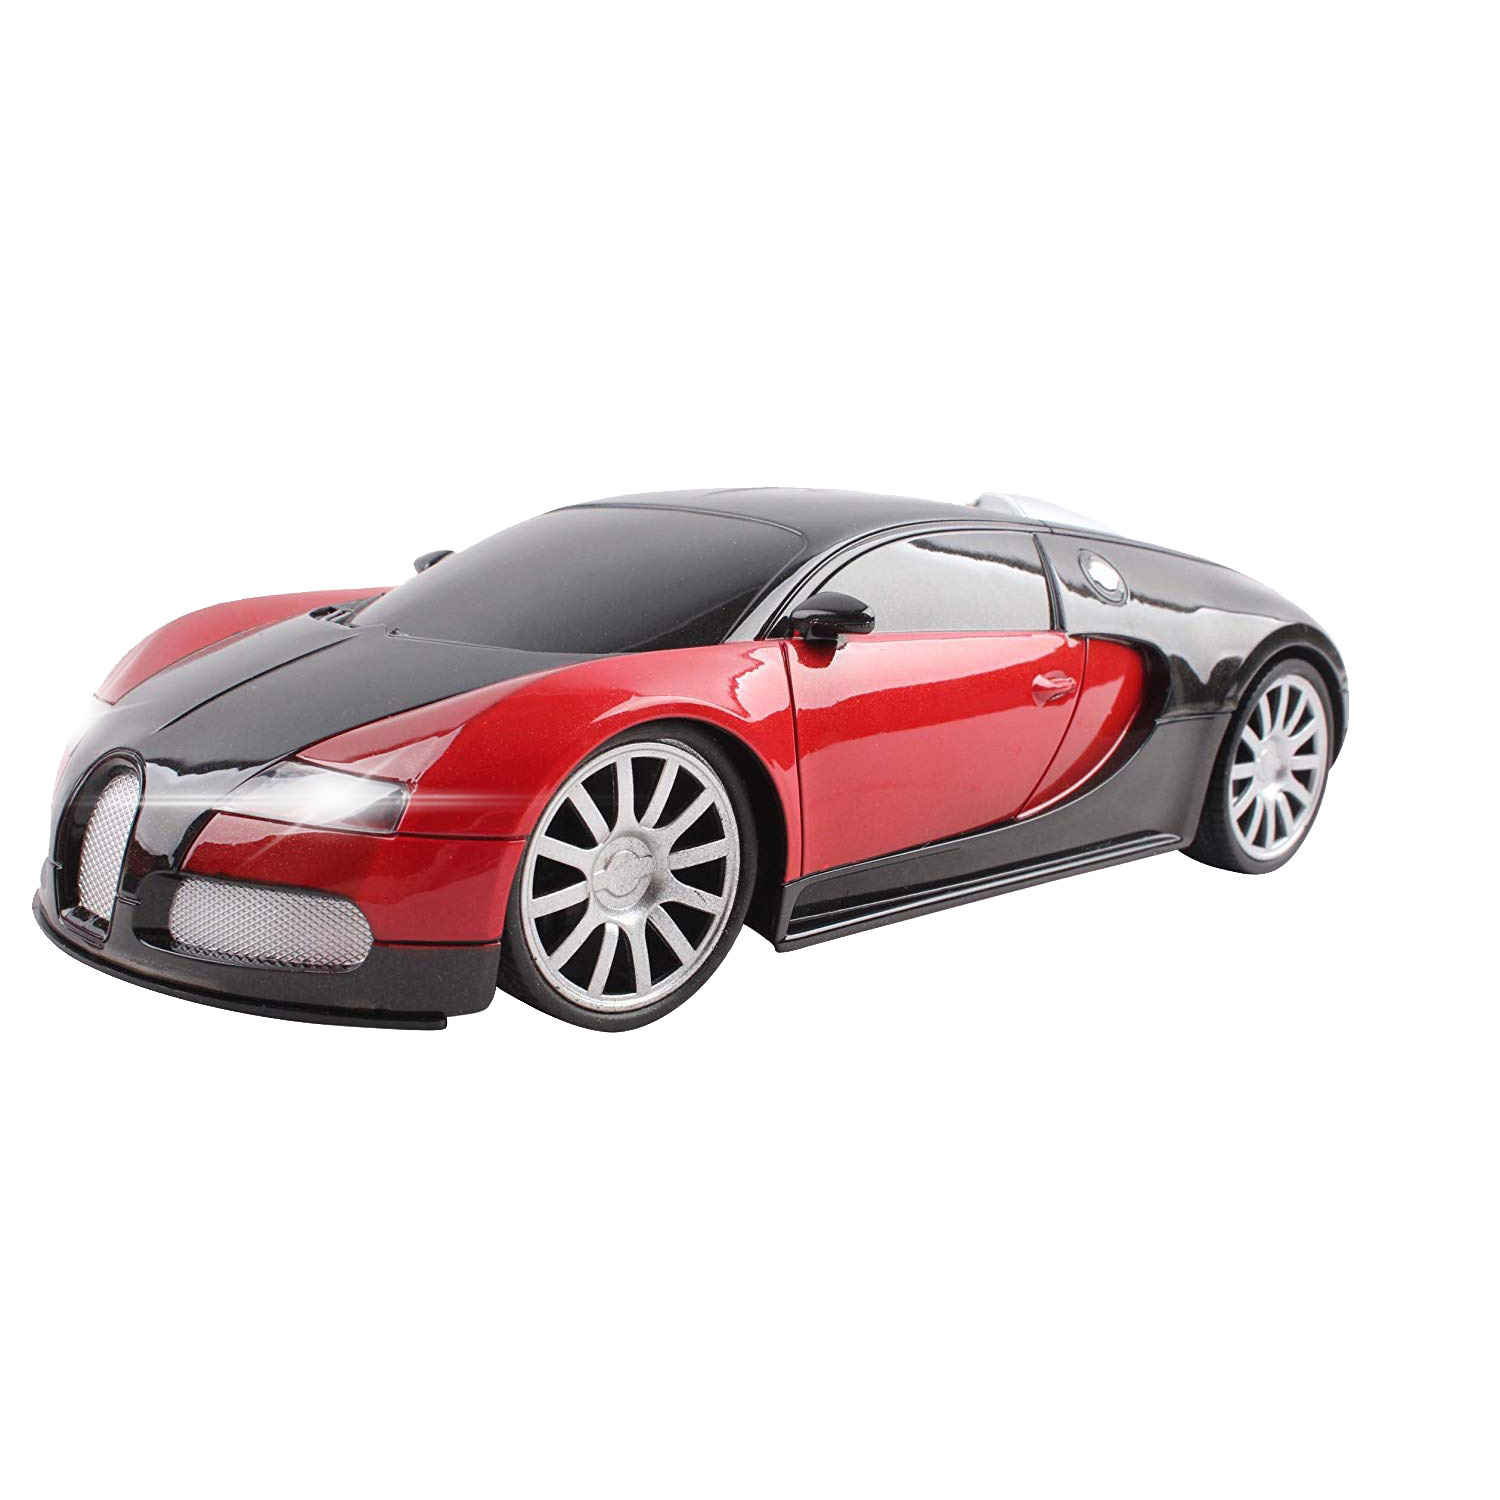 Super Exotic RC Car 1:16 Scale Remote Control Sports Cars For Kids with Working Headlights Easy To Operate Toy Race Vehicle (Color May Vary)